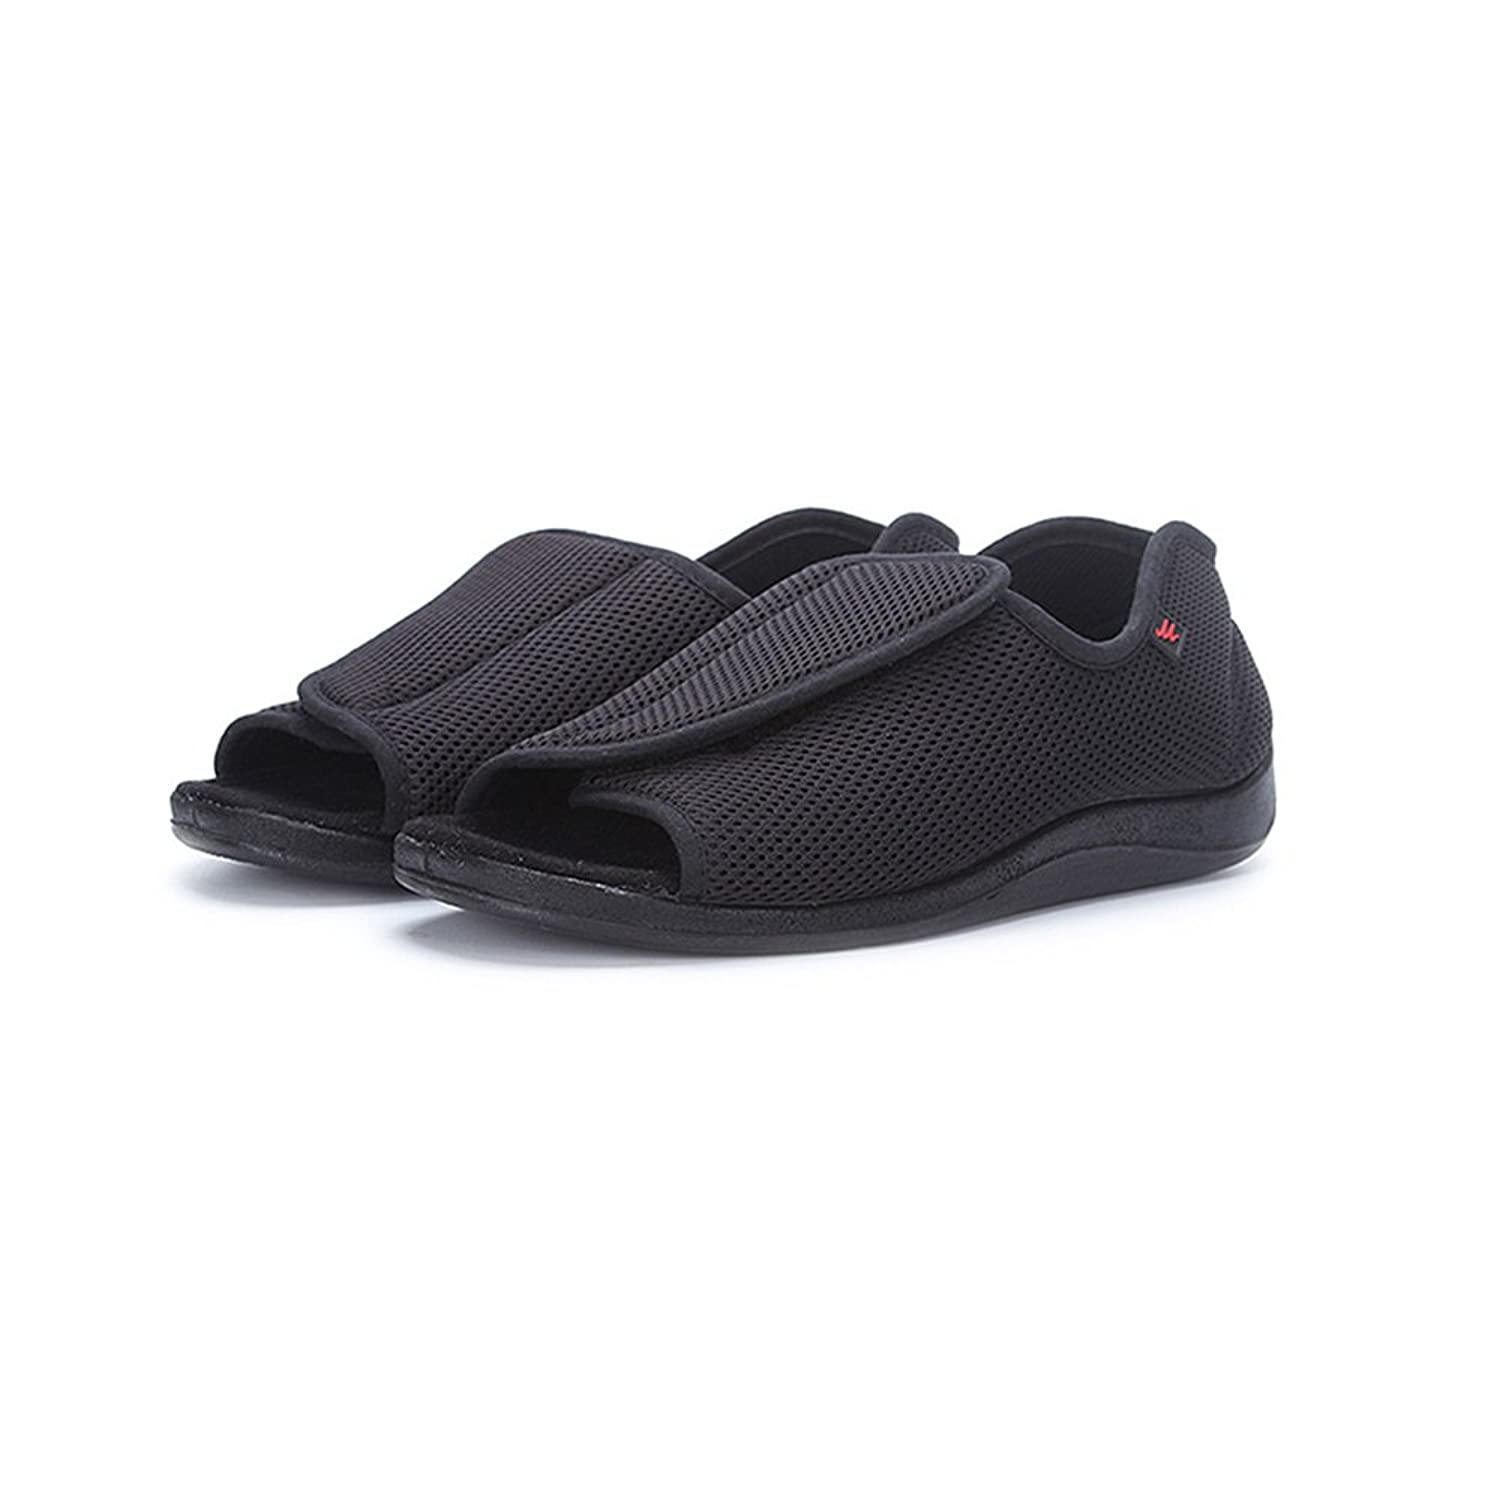 c69af43b7fd NEPPT Diabetic Slippers Plantar Fasciitis Orthopedic Arthritis Feet Velcro  Diabetic Shoes for Men - Safety Extra Wide Tennis Open Toe Sandals Sneakers